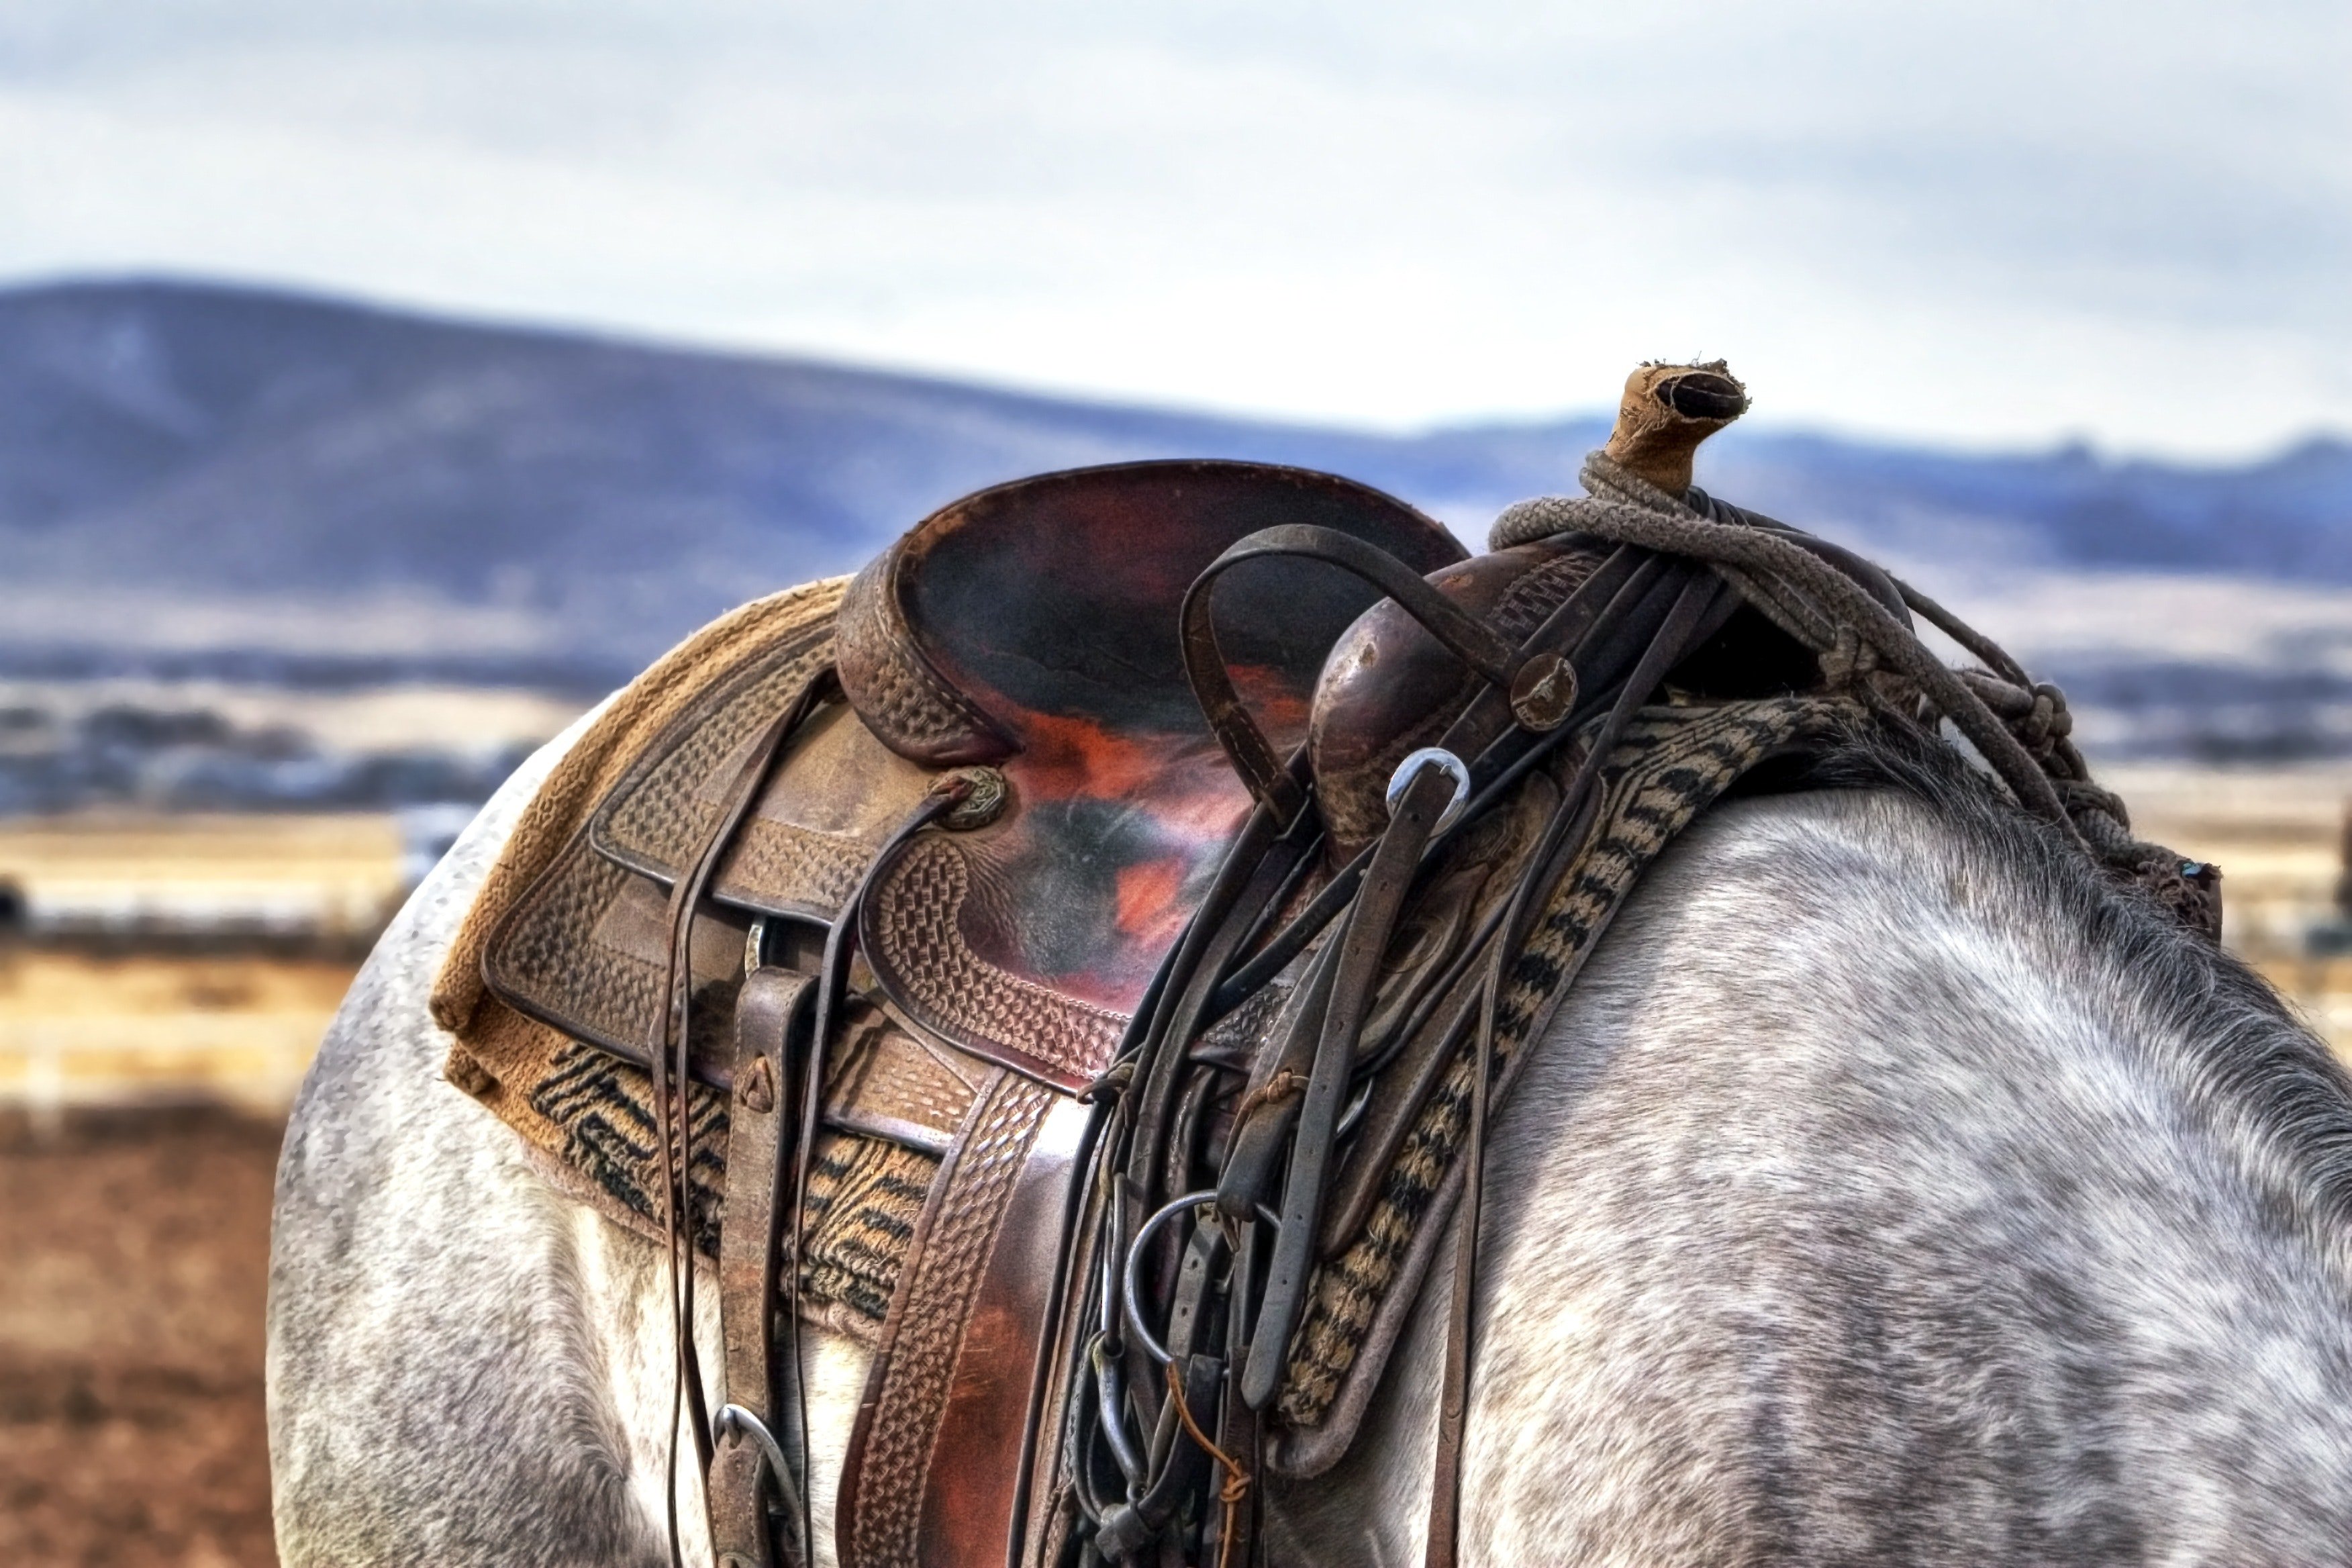 Brown And Black Leather Horse Saddle On White And Gray Animal Free Stock Photo